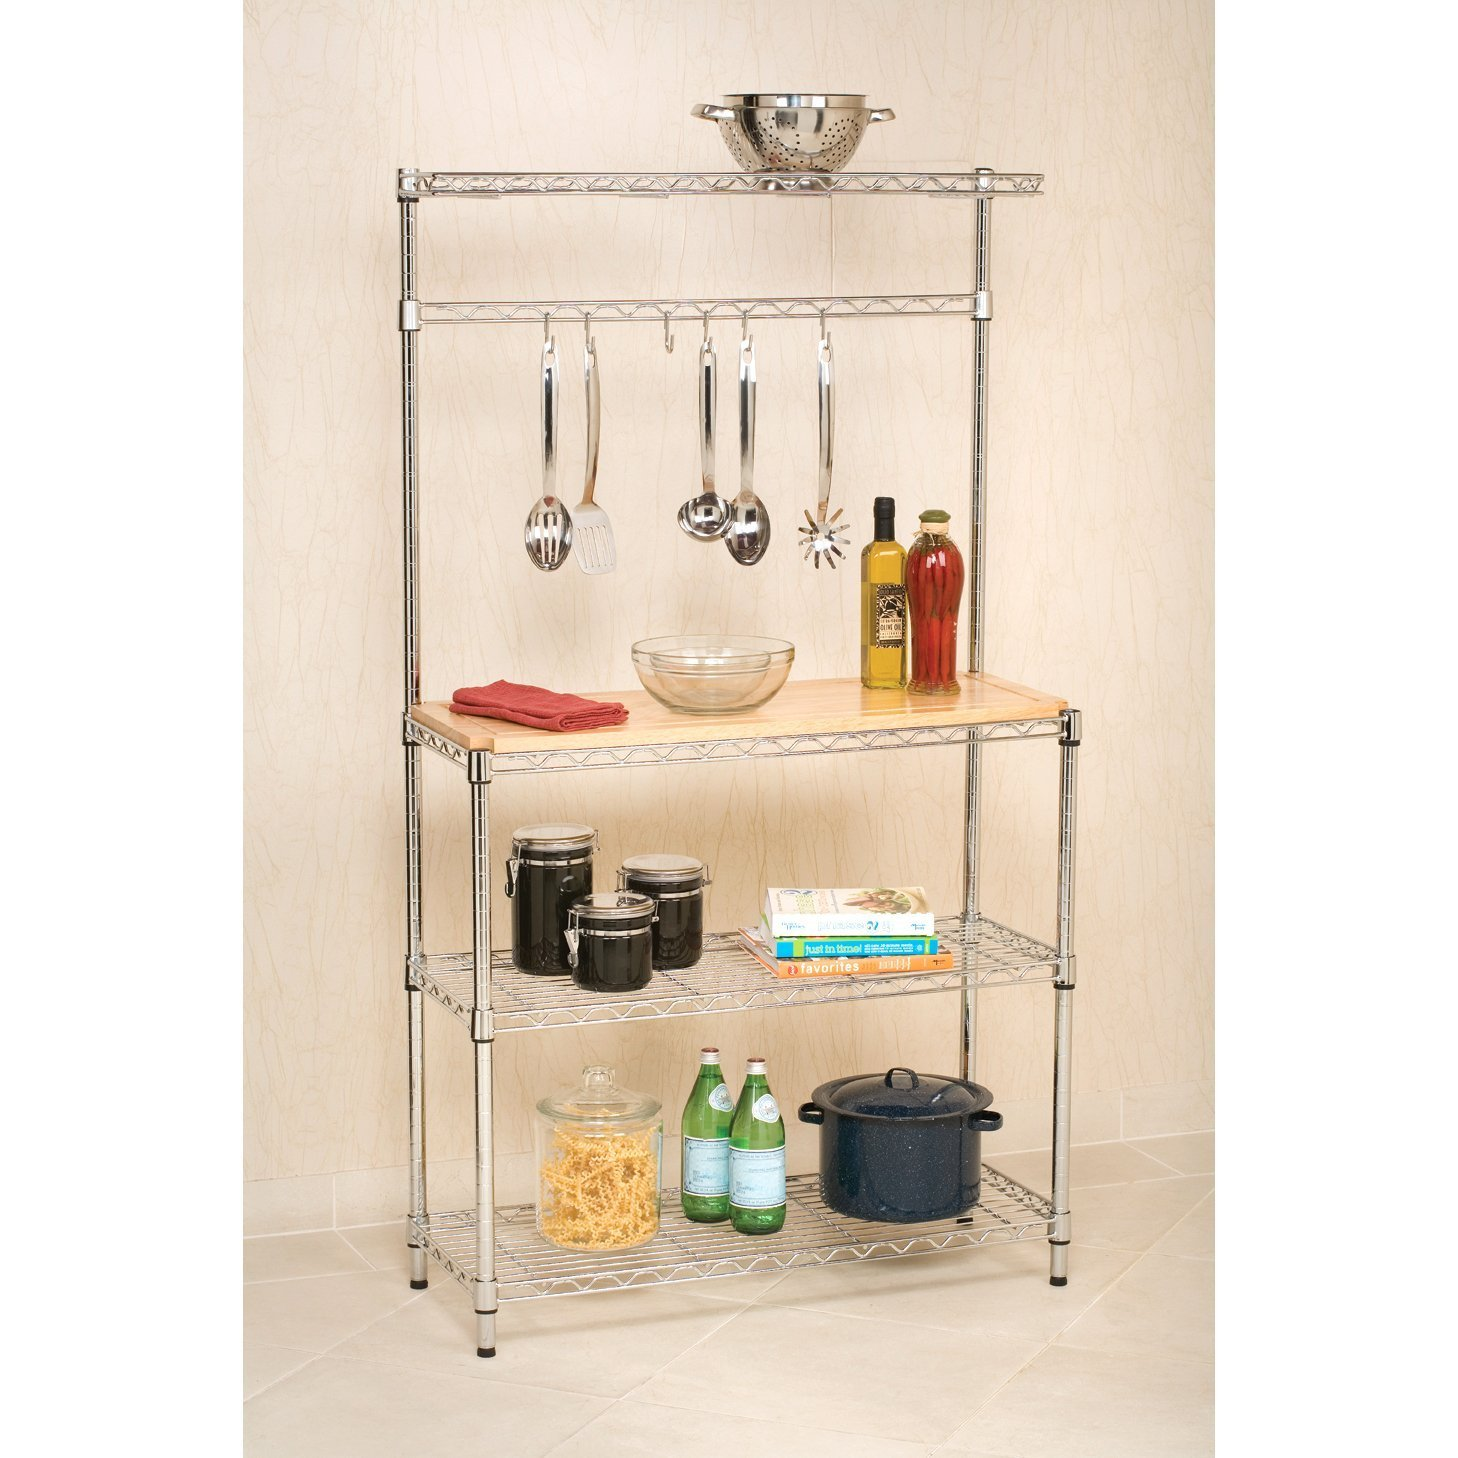 Amazon.com: Bakers Rack With Cutting Board And Storage Chrome Shelves  Kitchen Work Station Shelf Organizer K60: Kitchen U0026 Dining